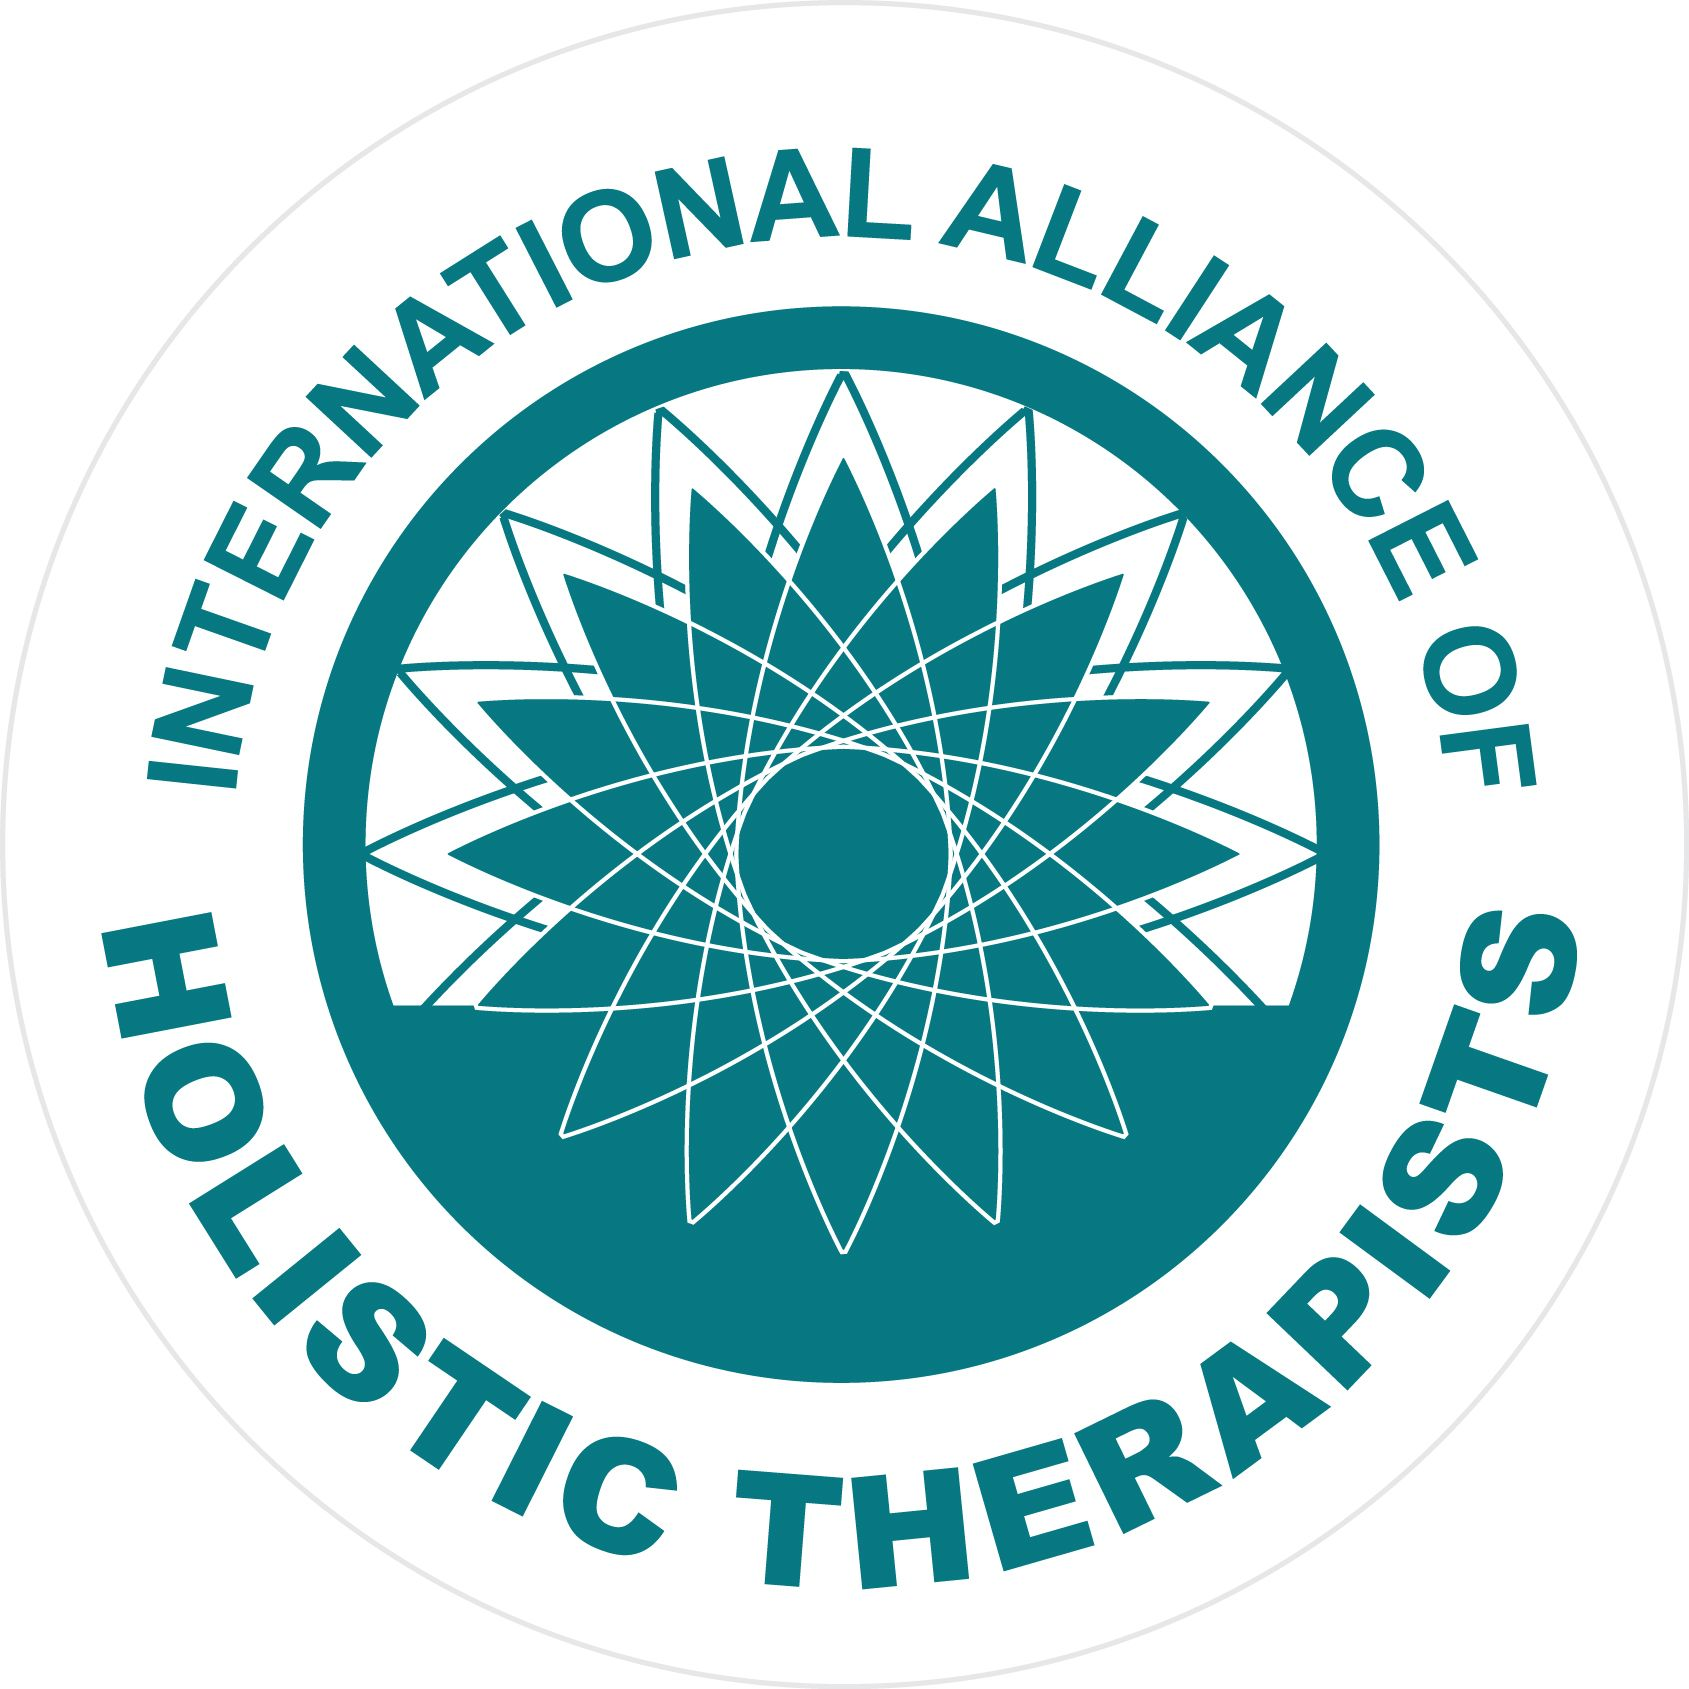 international alliance of holistic therapists logo